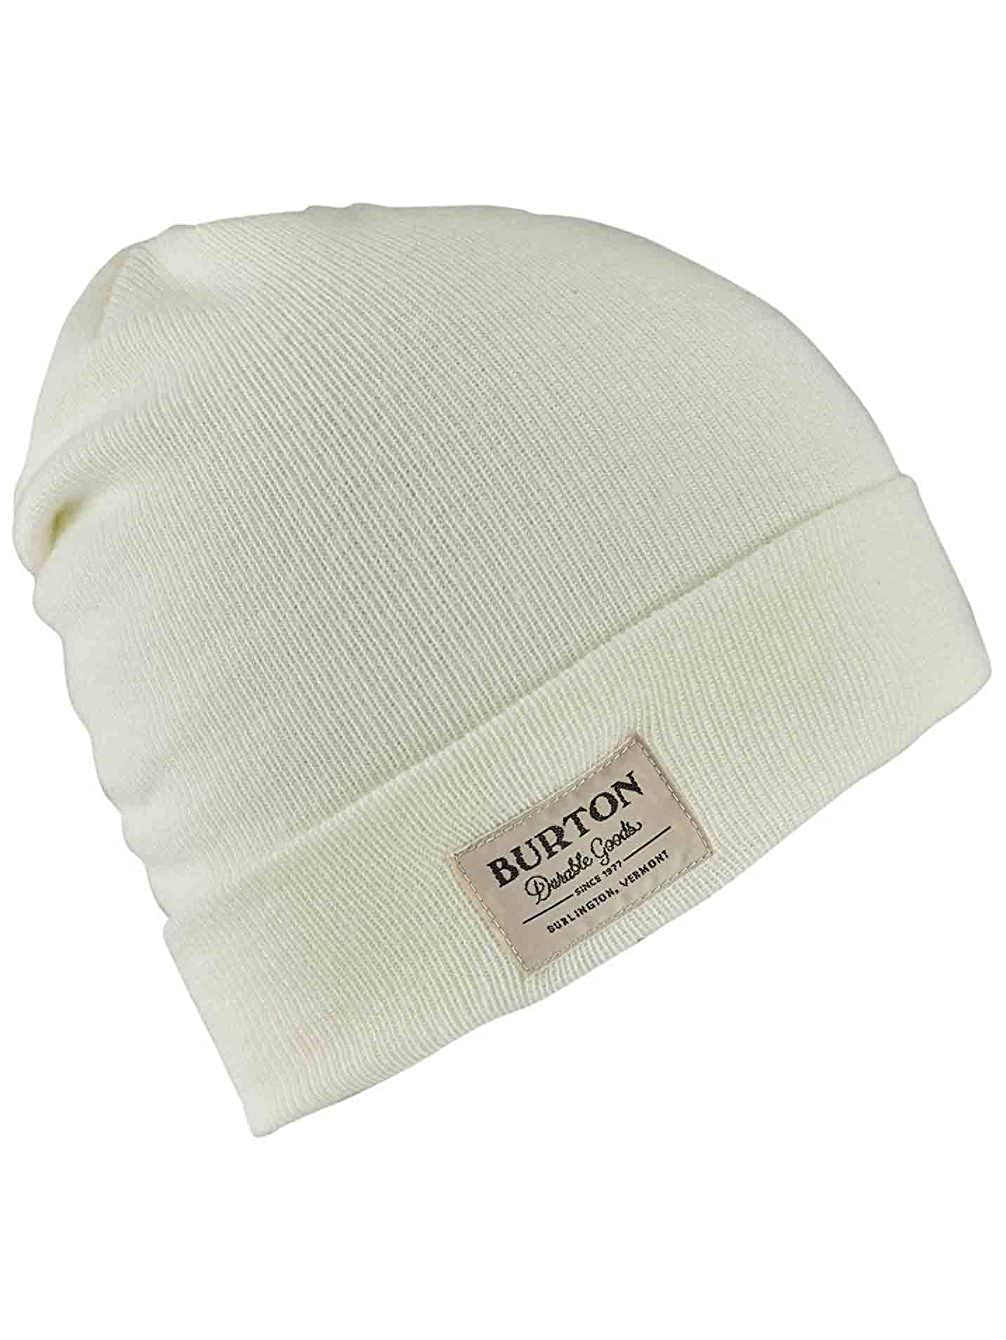 Burton Gorros Kactusbunch Tall White Cuff: Amazon.es: Ropa y ...